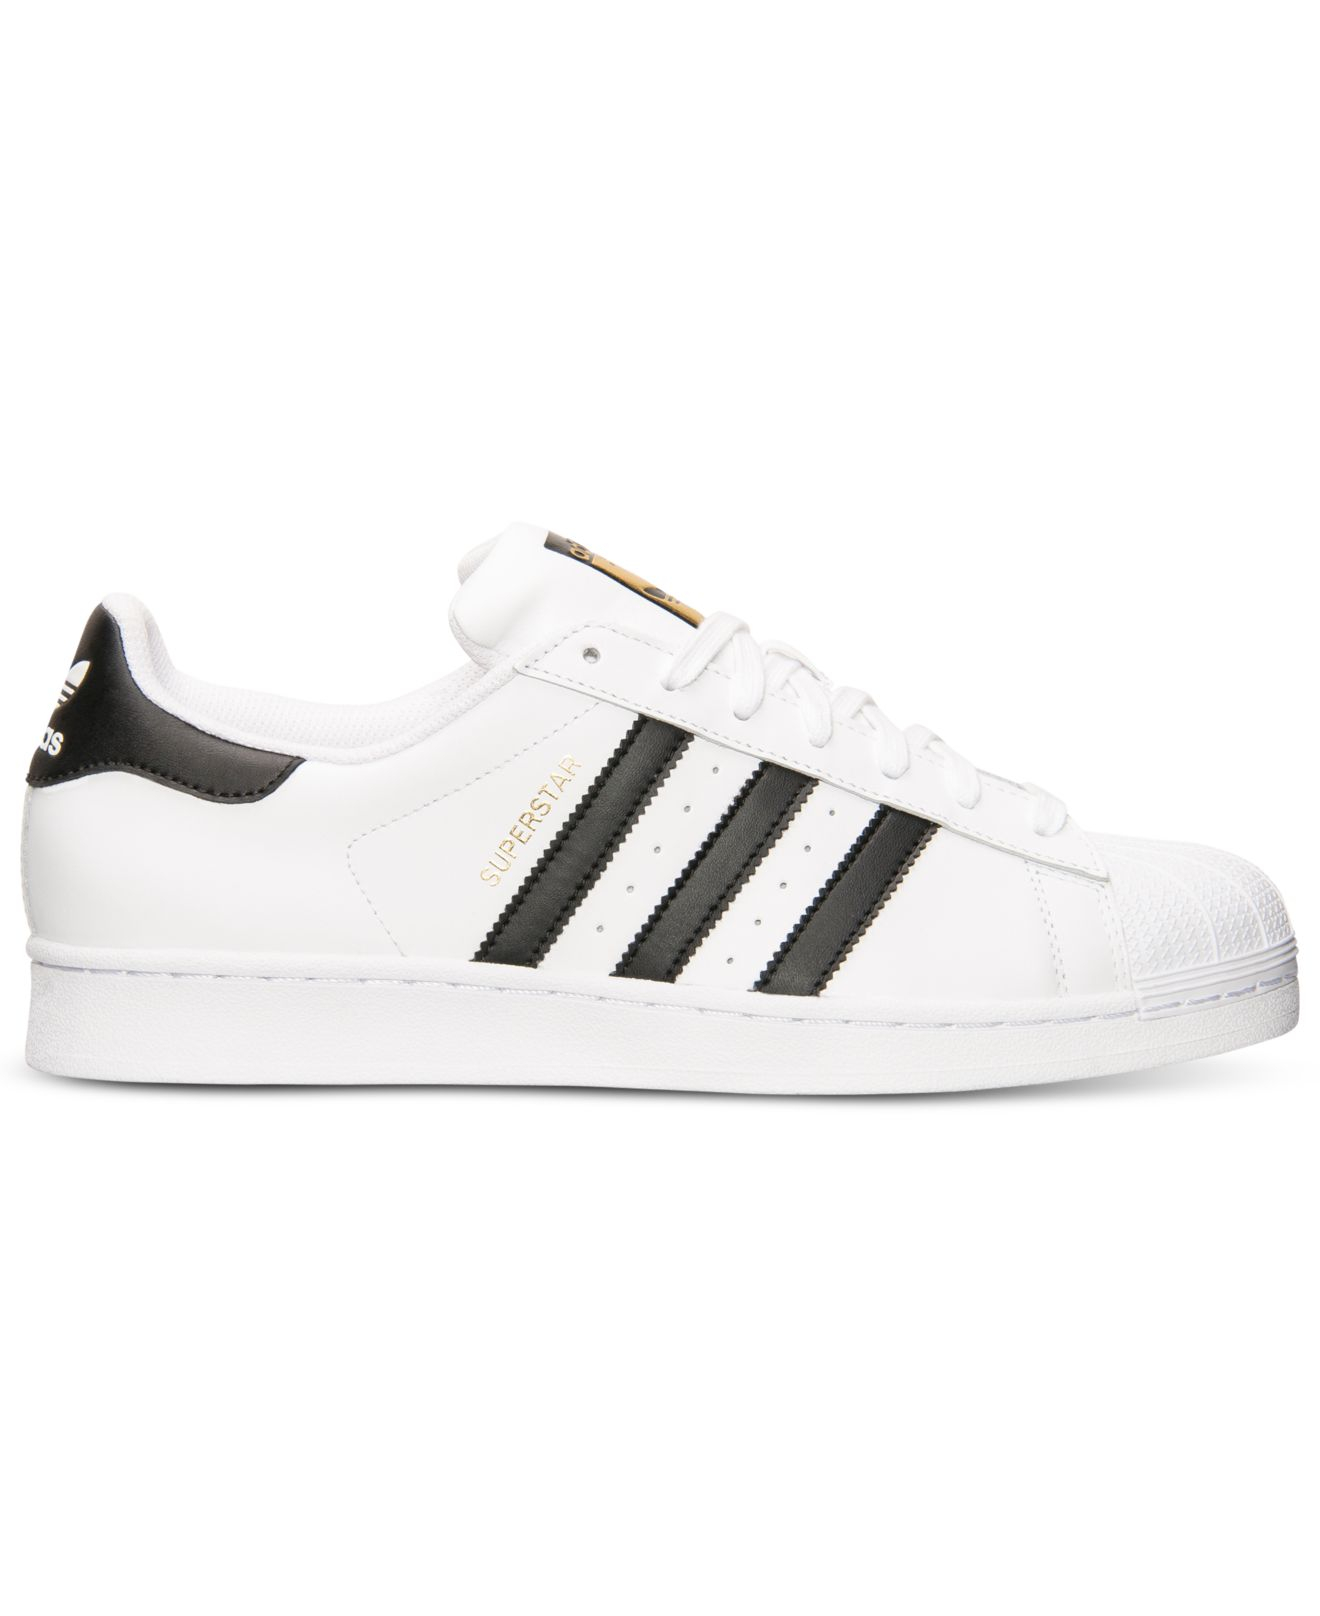 adidas white sneakers for men